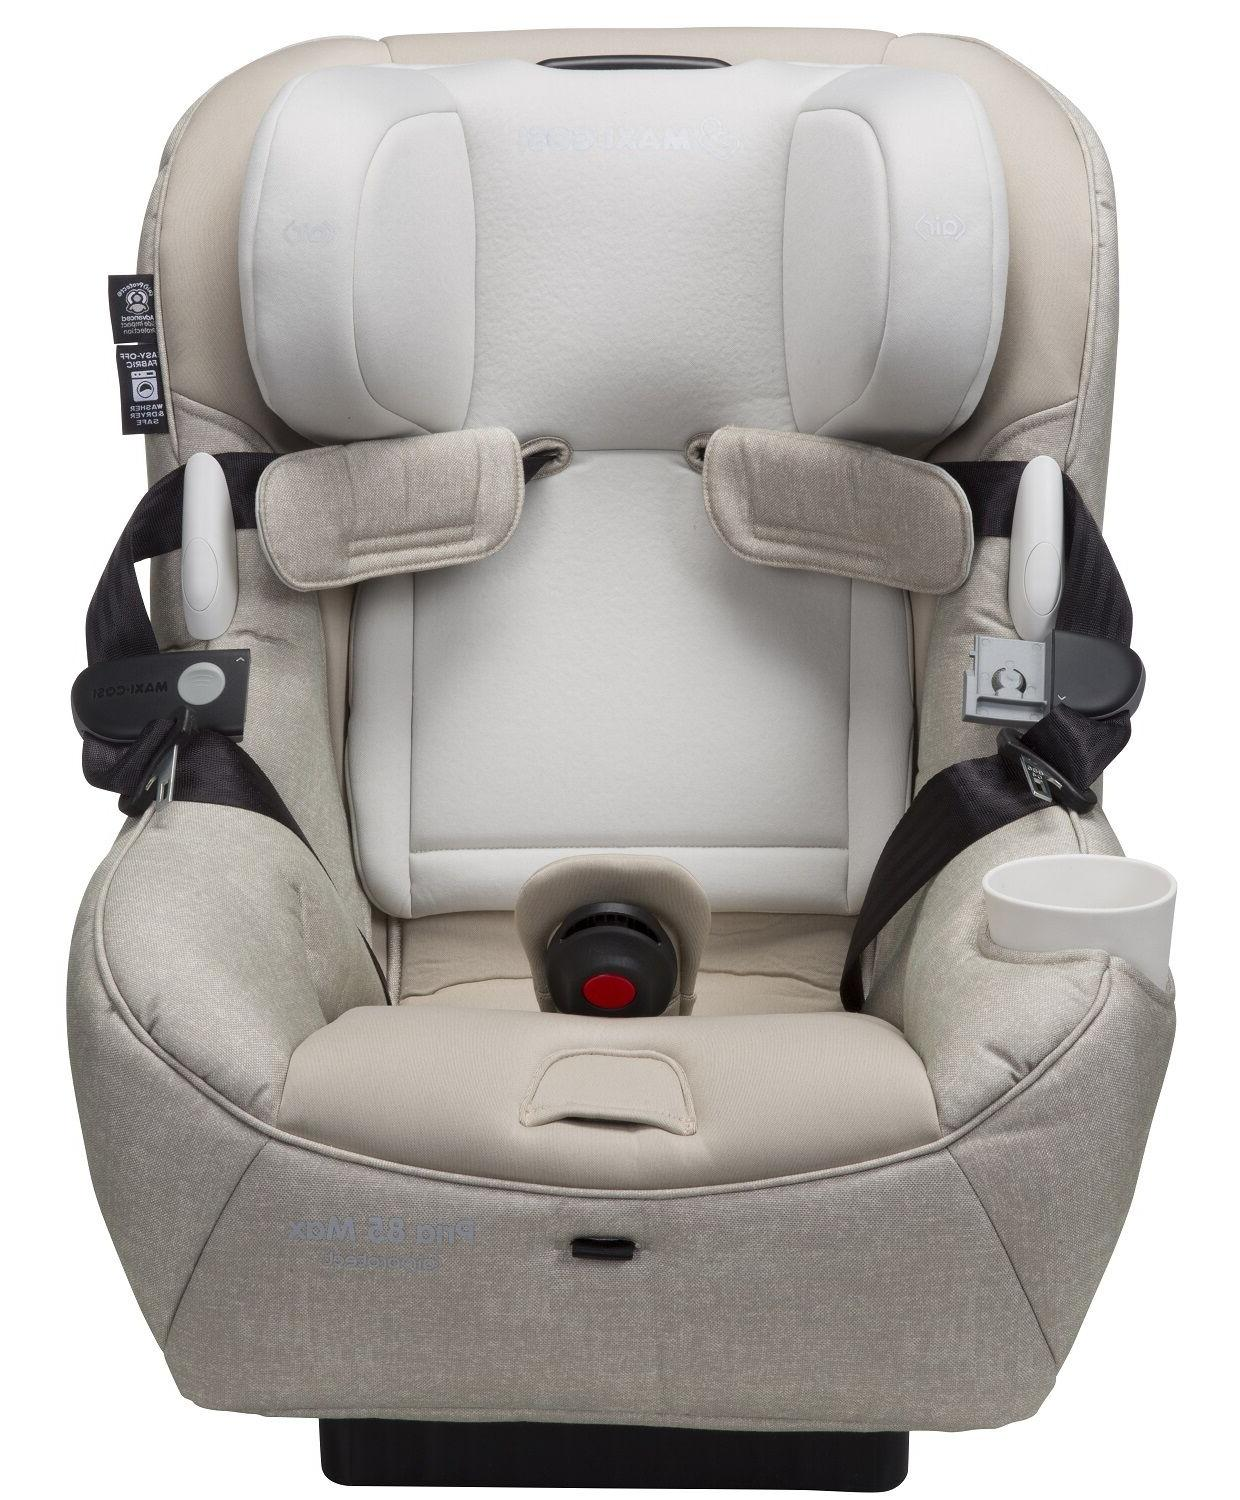 Maxi-Cosi 85 Max Convertible Car Child Safety Nomad Sand